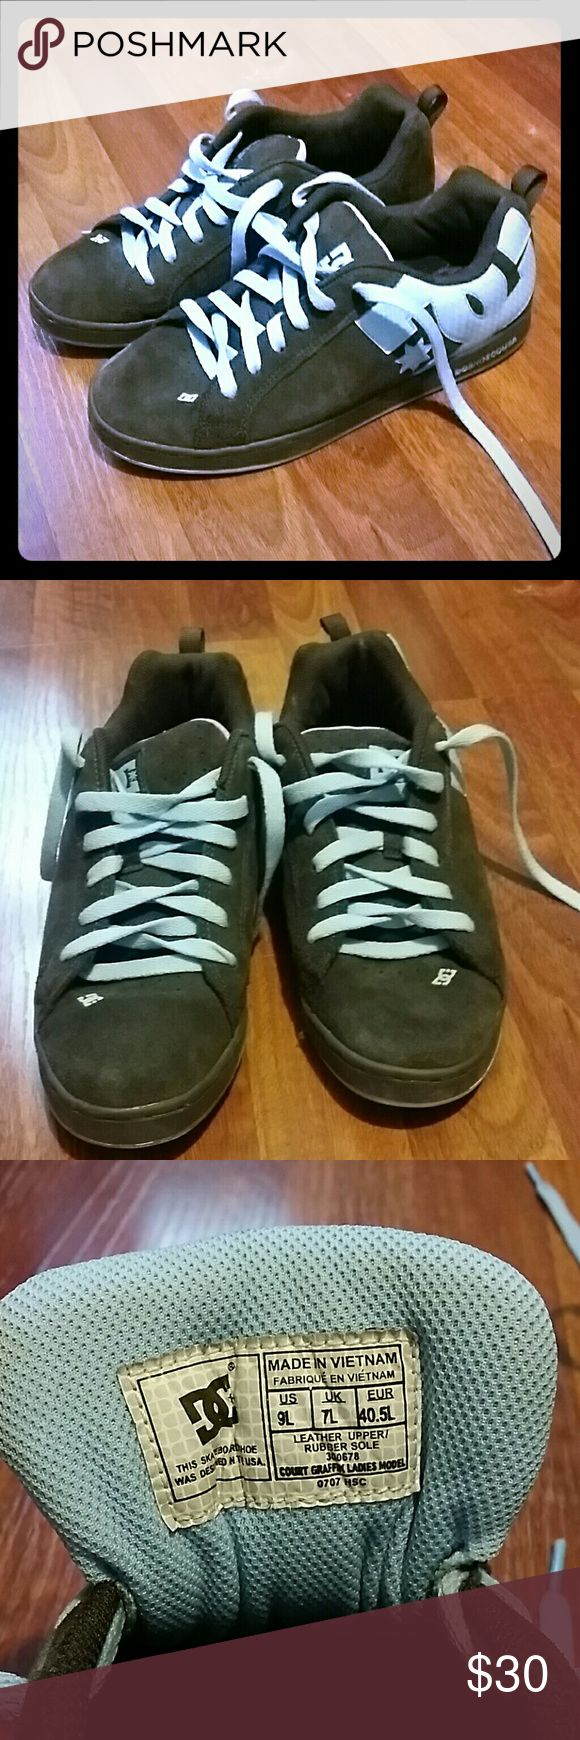 DC Skate shoes New DC Skate shoes. Never worn. Brown and light blue color. Womens size 9 DC Shoes Sneakers